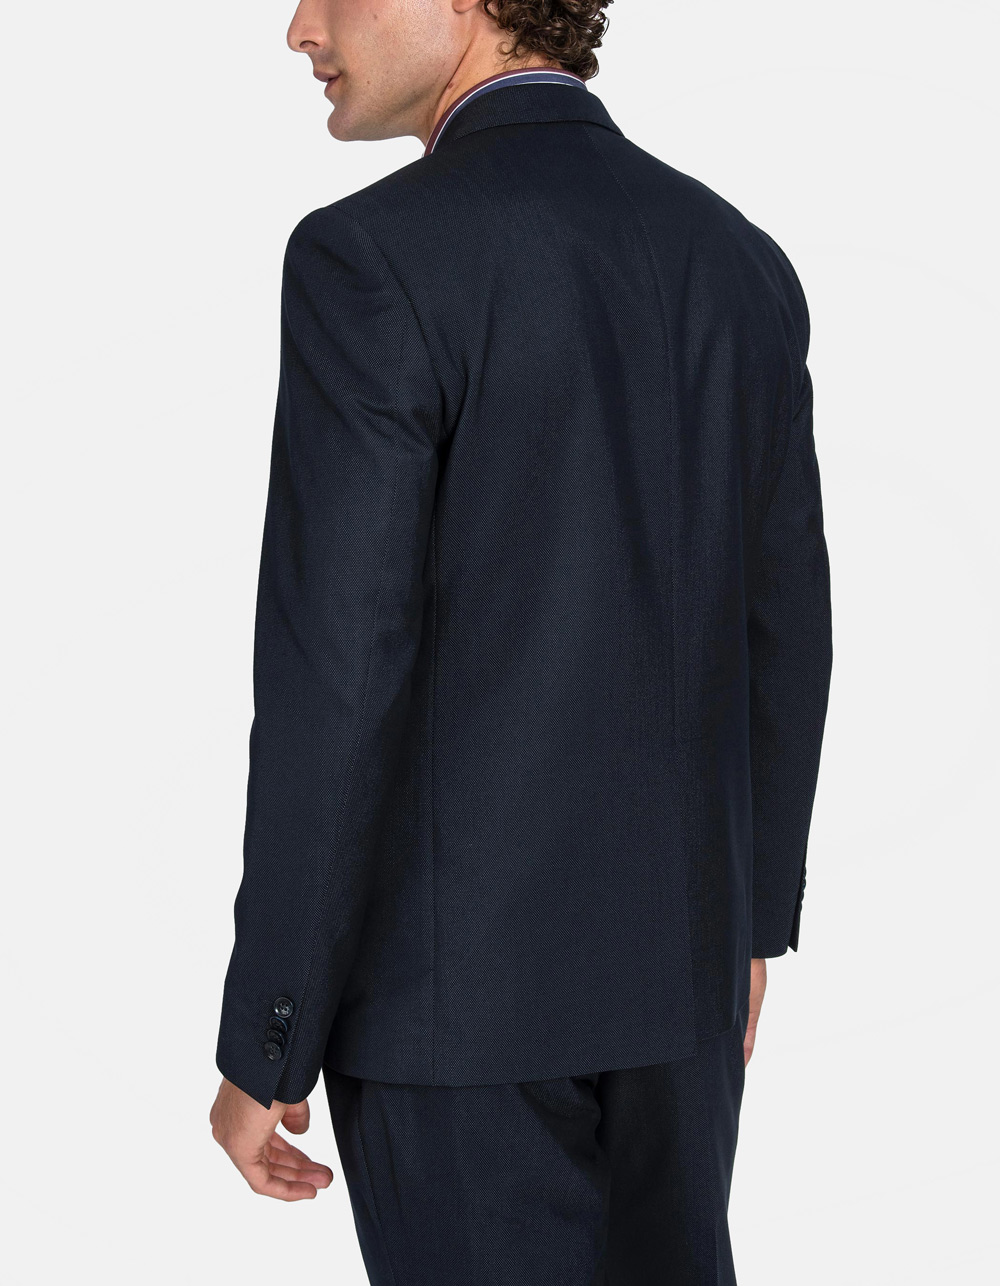 Black Oxford suit - Backside